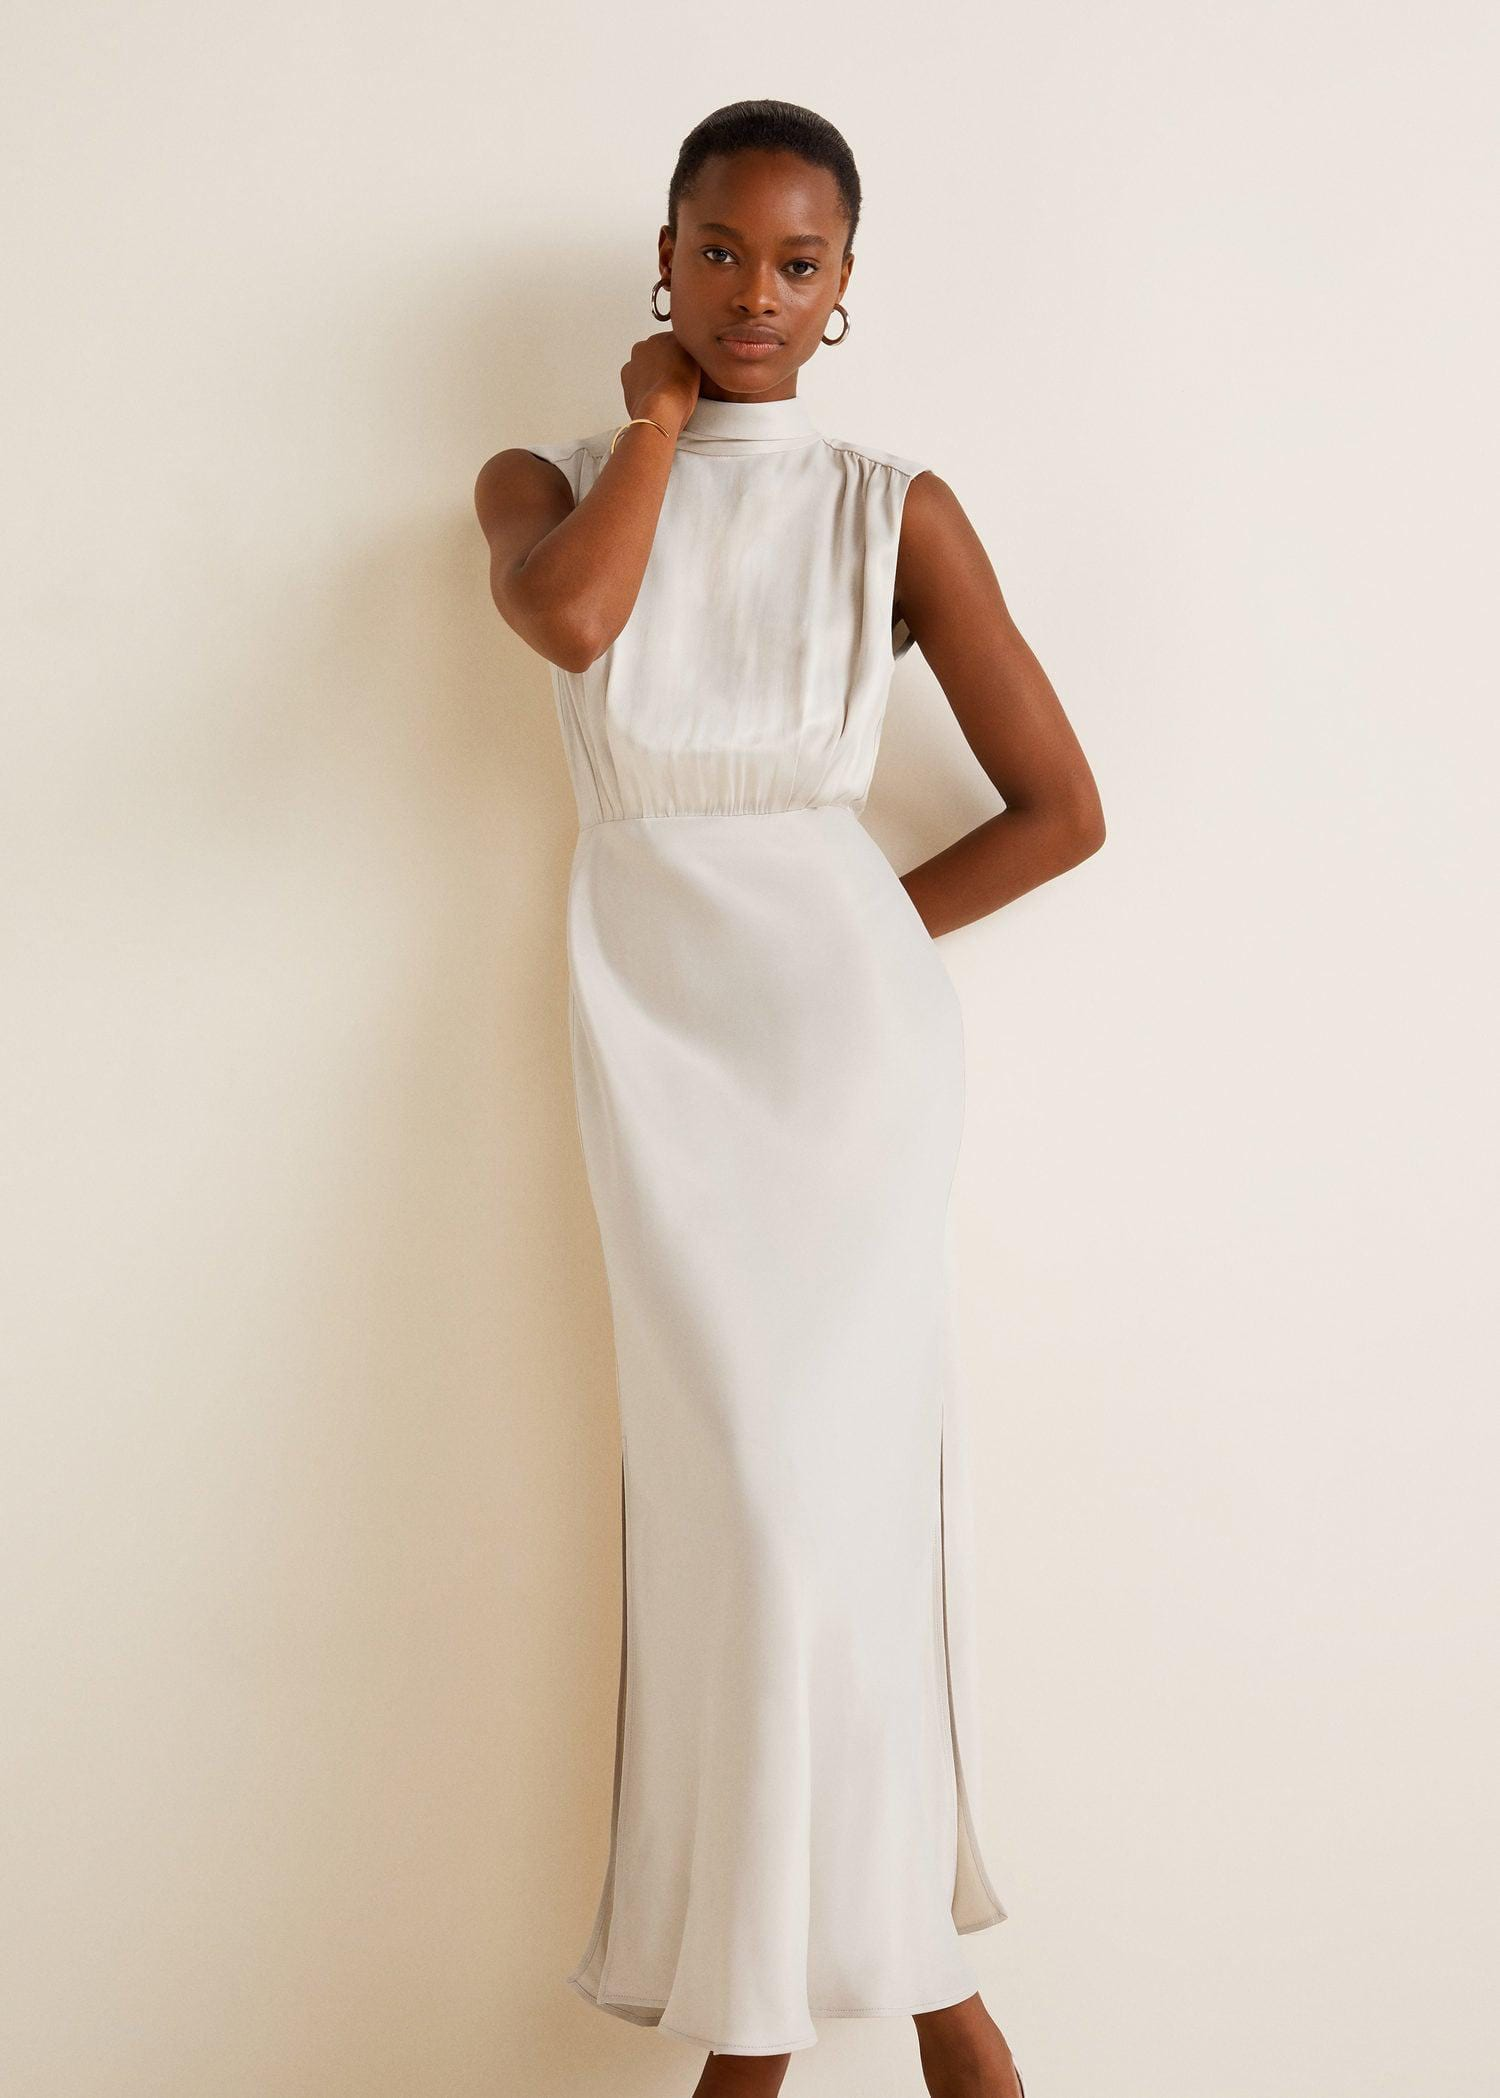 black woman with short hair wearing a high neck ivory satin gown